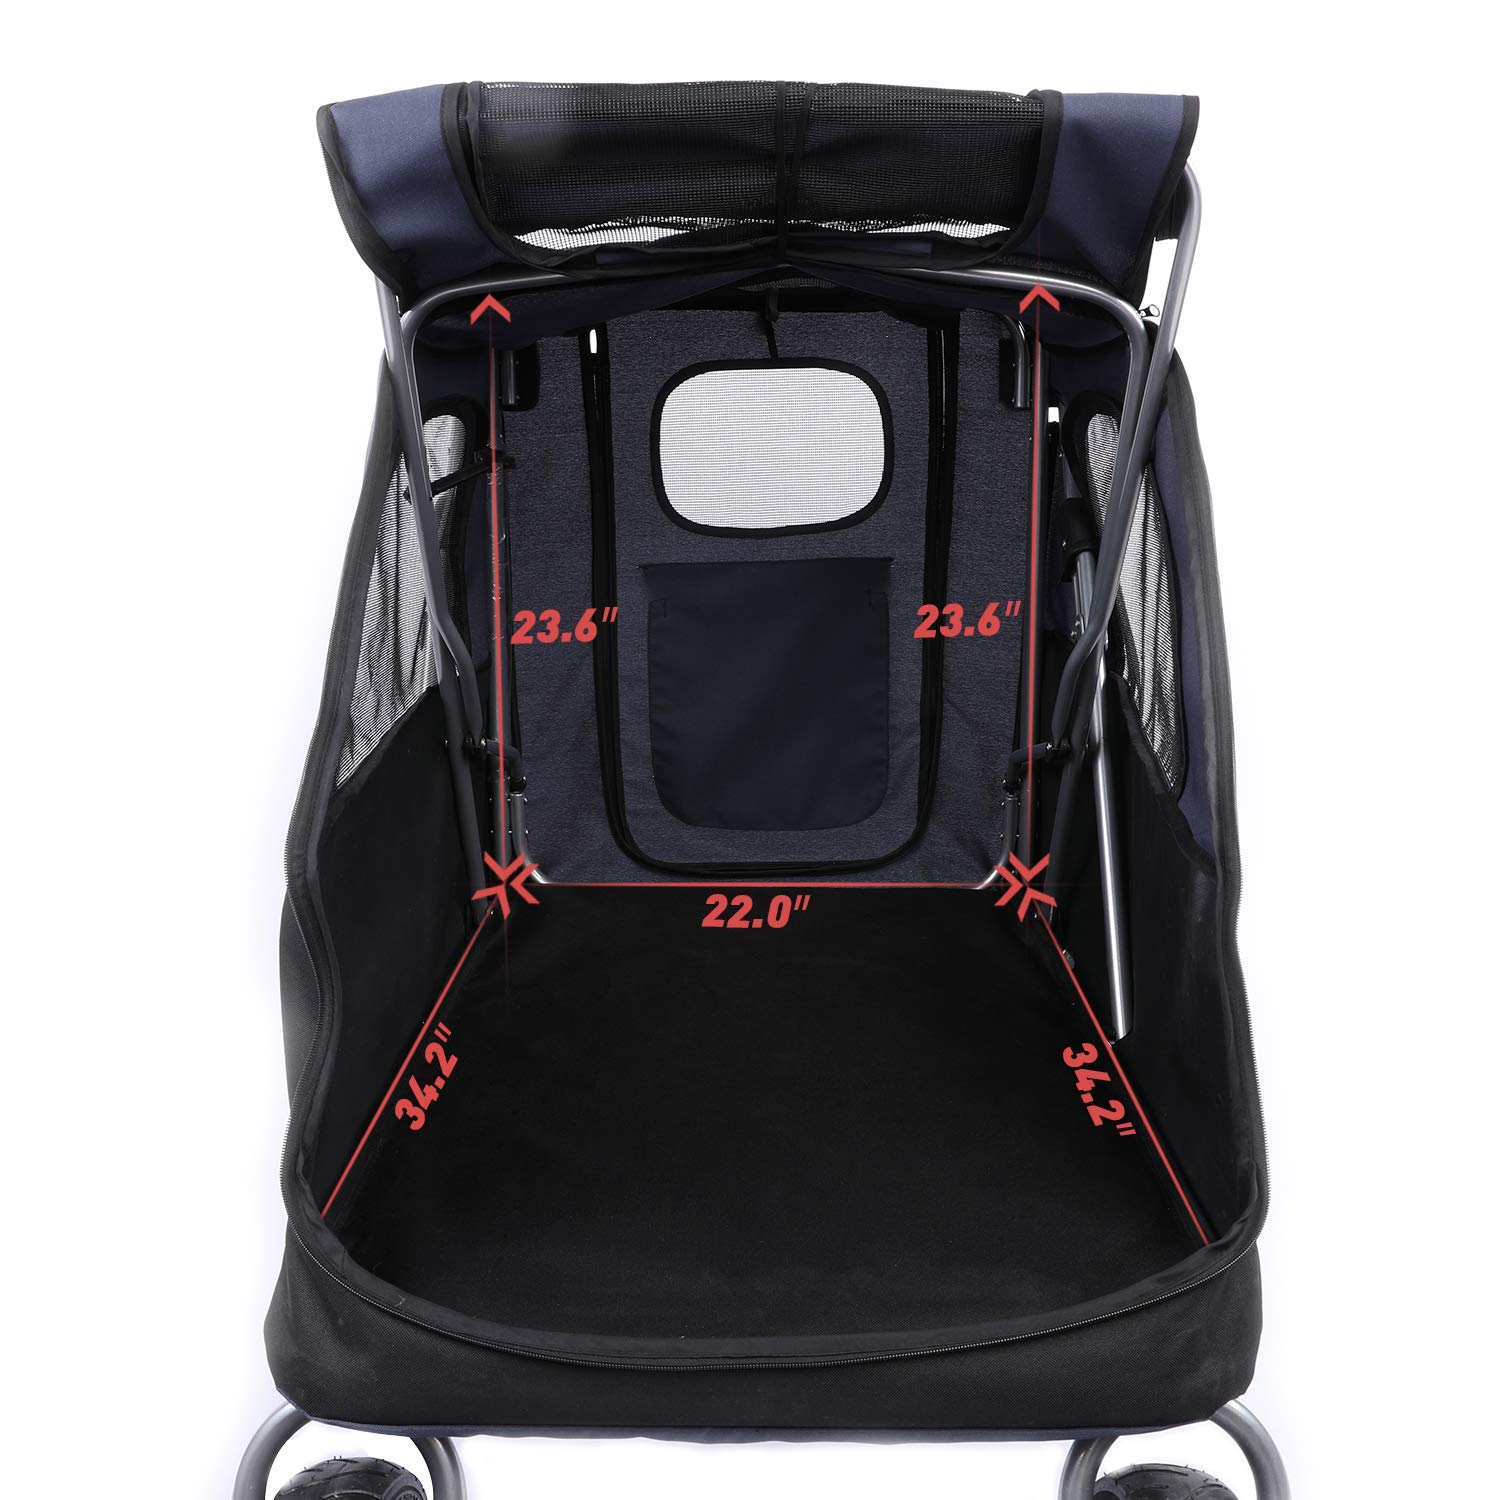 Cats and Other Pets Spacious Stroller for Big//Medium//Small Dogs Foldable Traveling Carrier with Adjustable Handle for Dogs LAZY BUDDY Dog Stroller with 4 Rubber Wheels